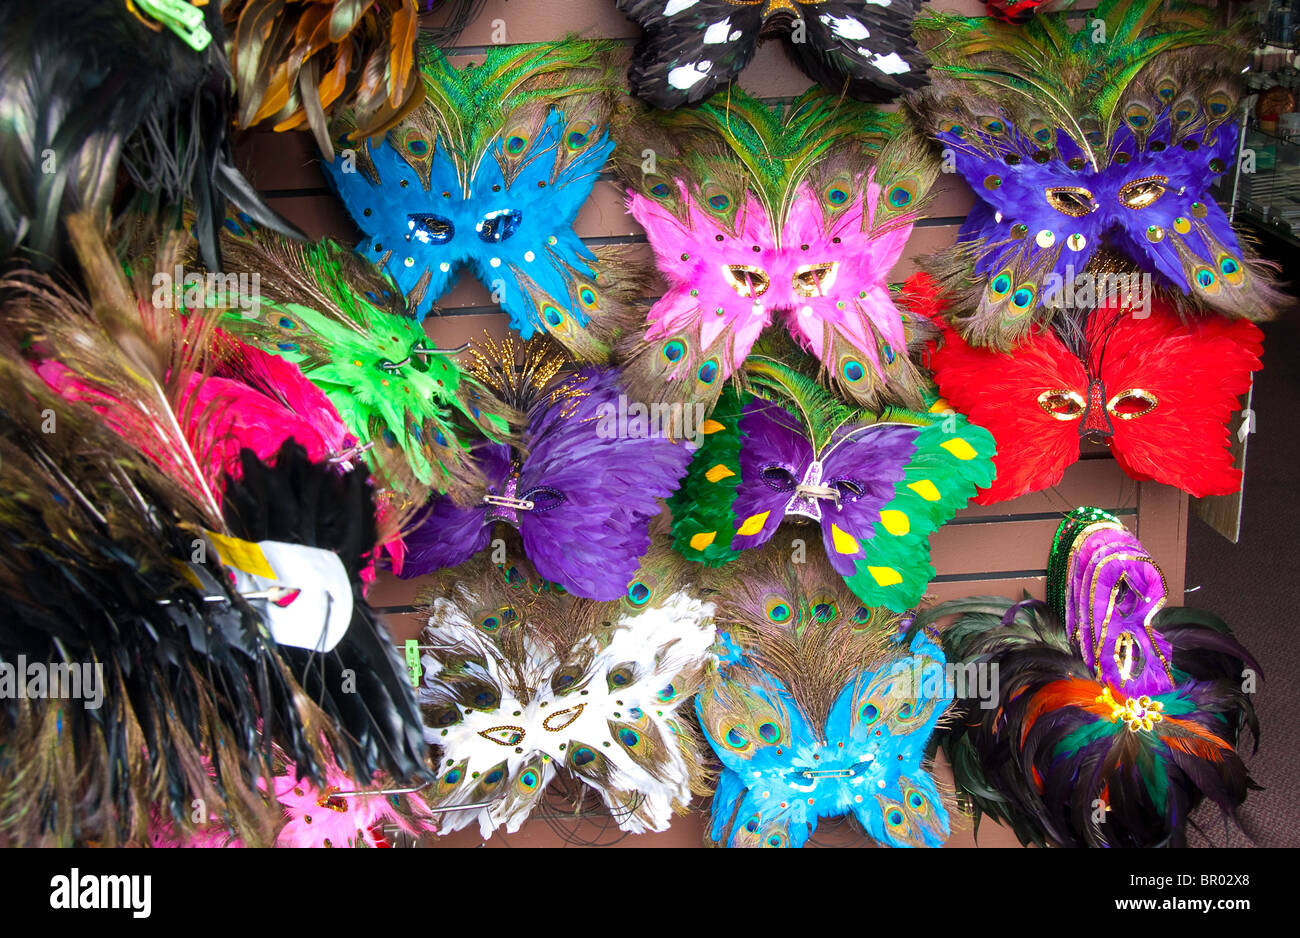 Karneval Masken in New Orleans, Louisiana, USA Stockbild